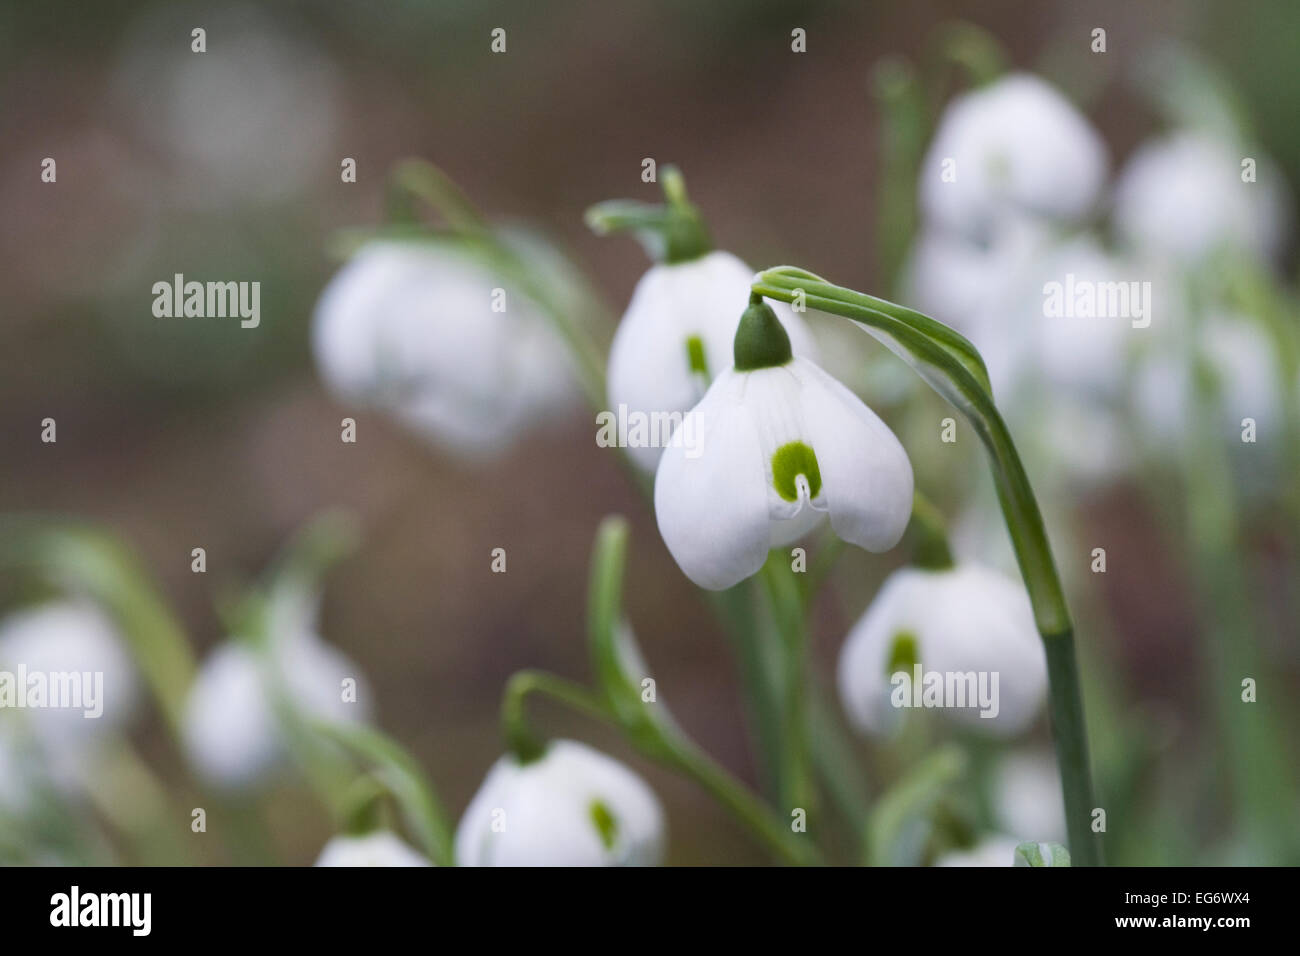 Galanthus Hippolyta. Species snowdrop growing in a woodland garden. - Stock Image